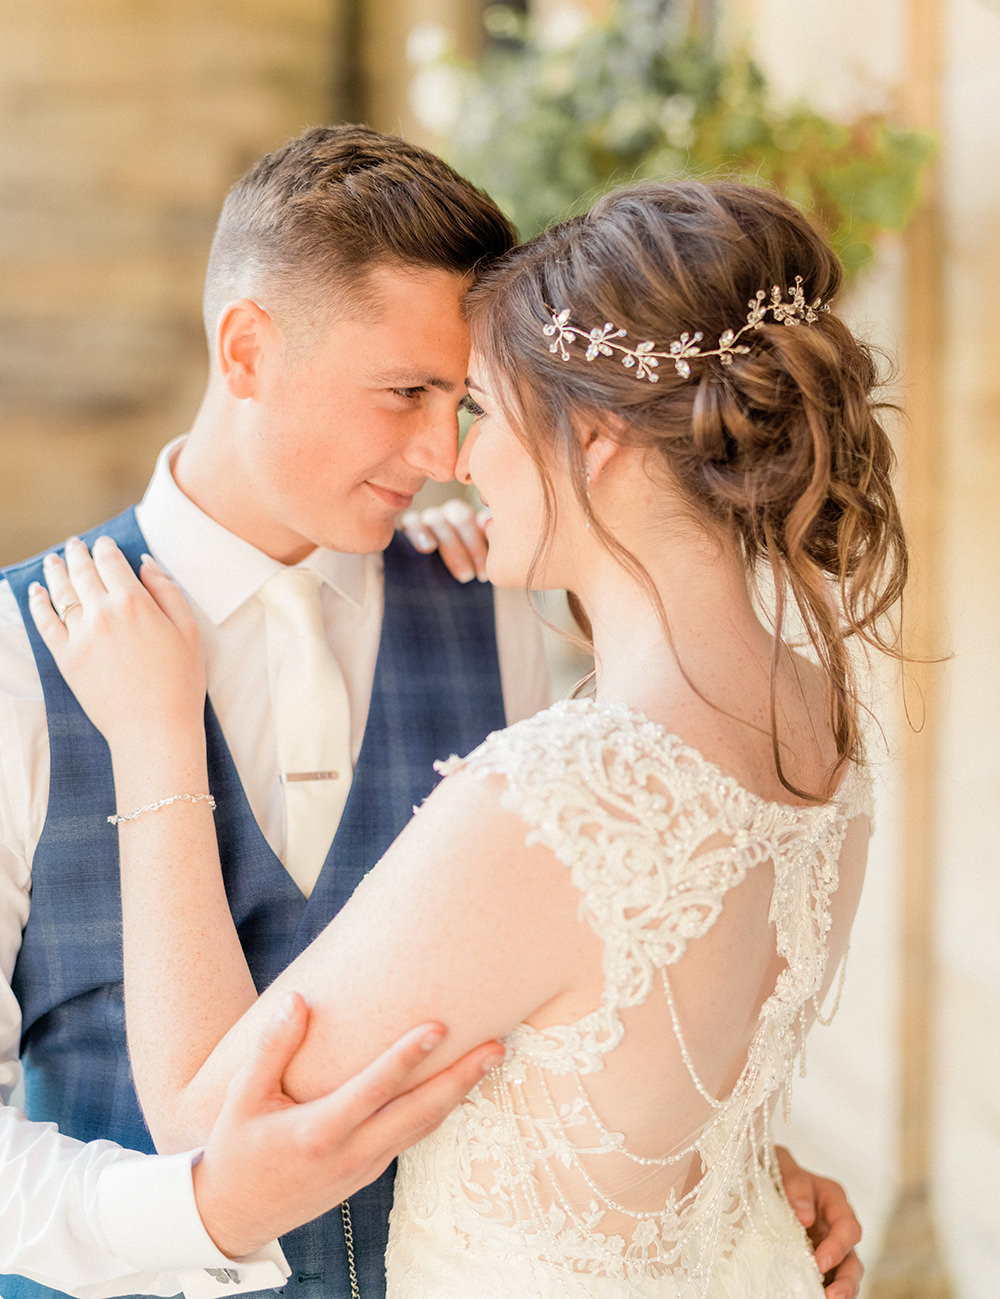 Bride Bridal Hair Style Up Do Accessory Beamish Hall Wedding Carn Patrick Photography